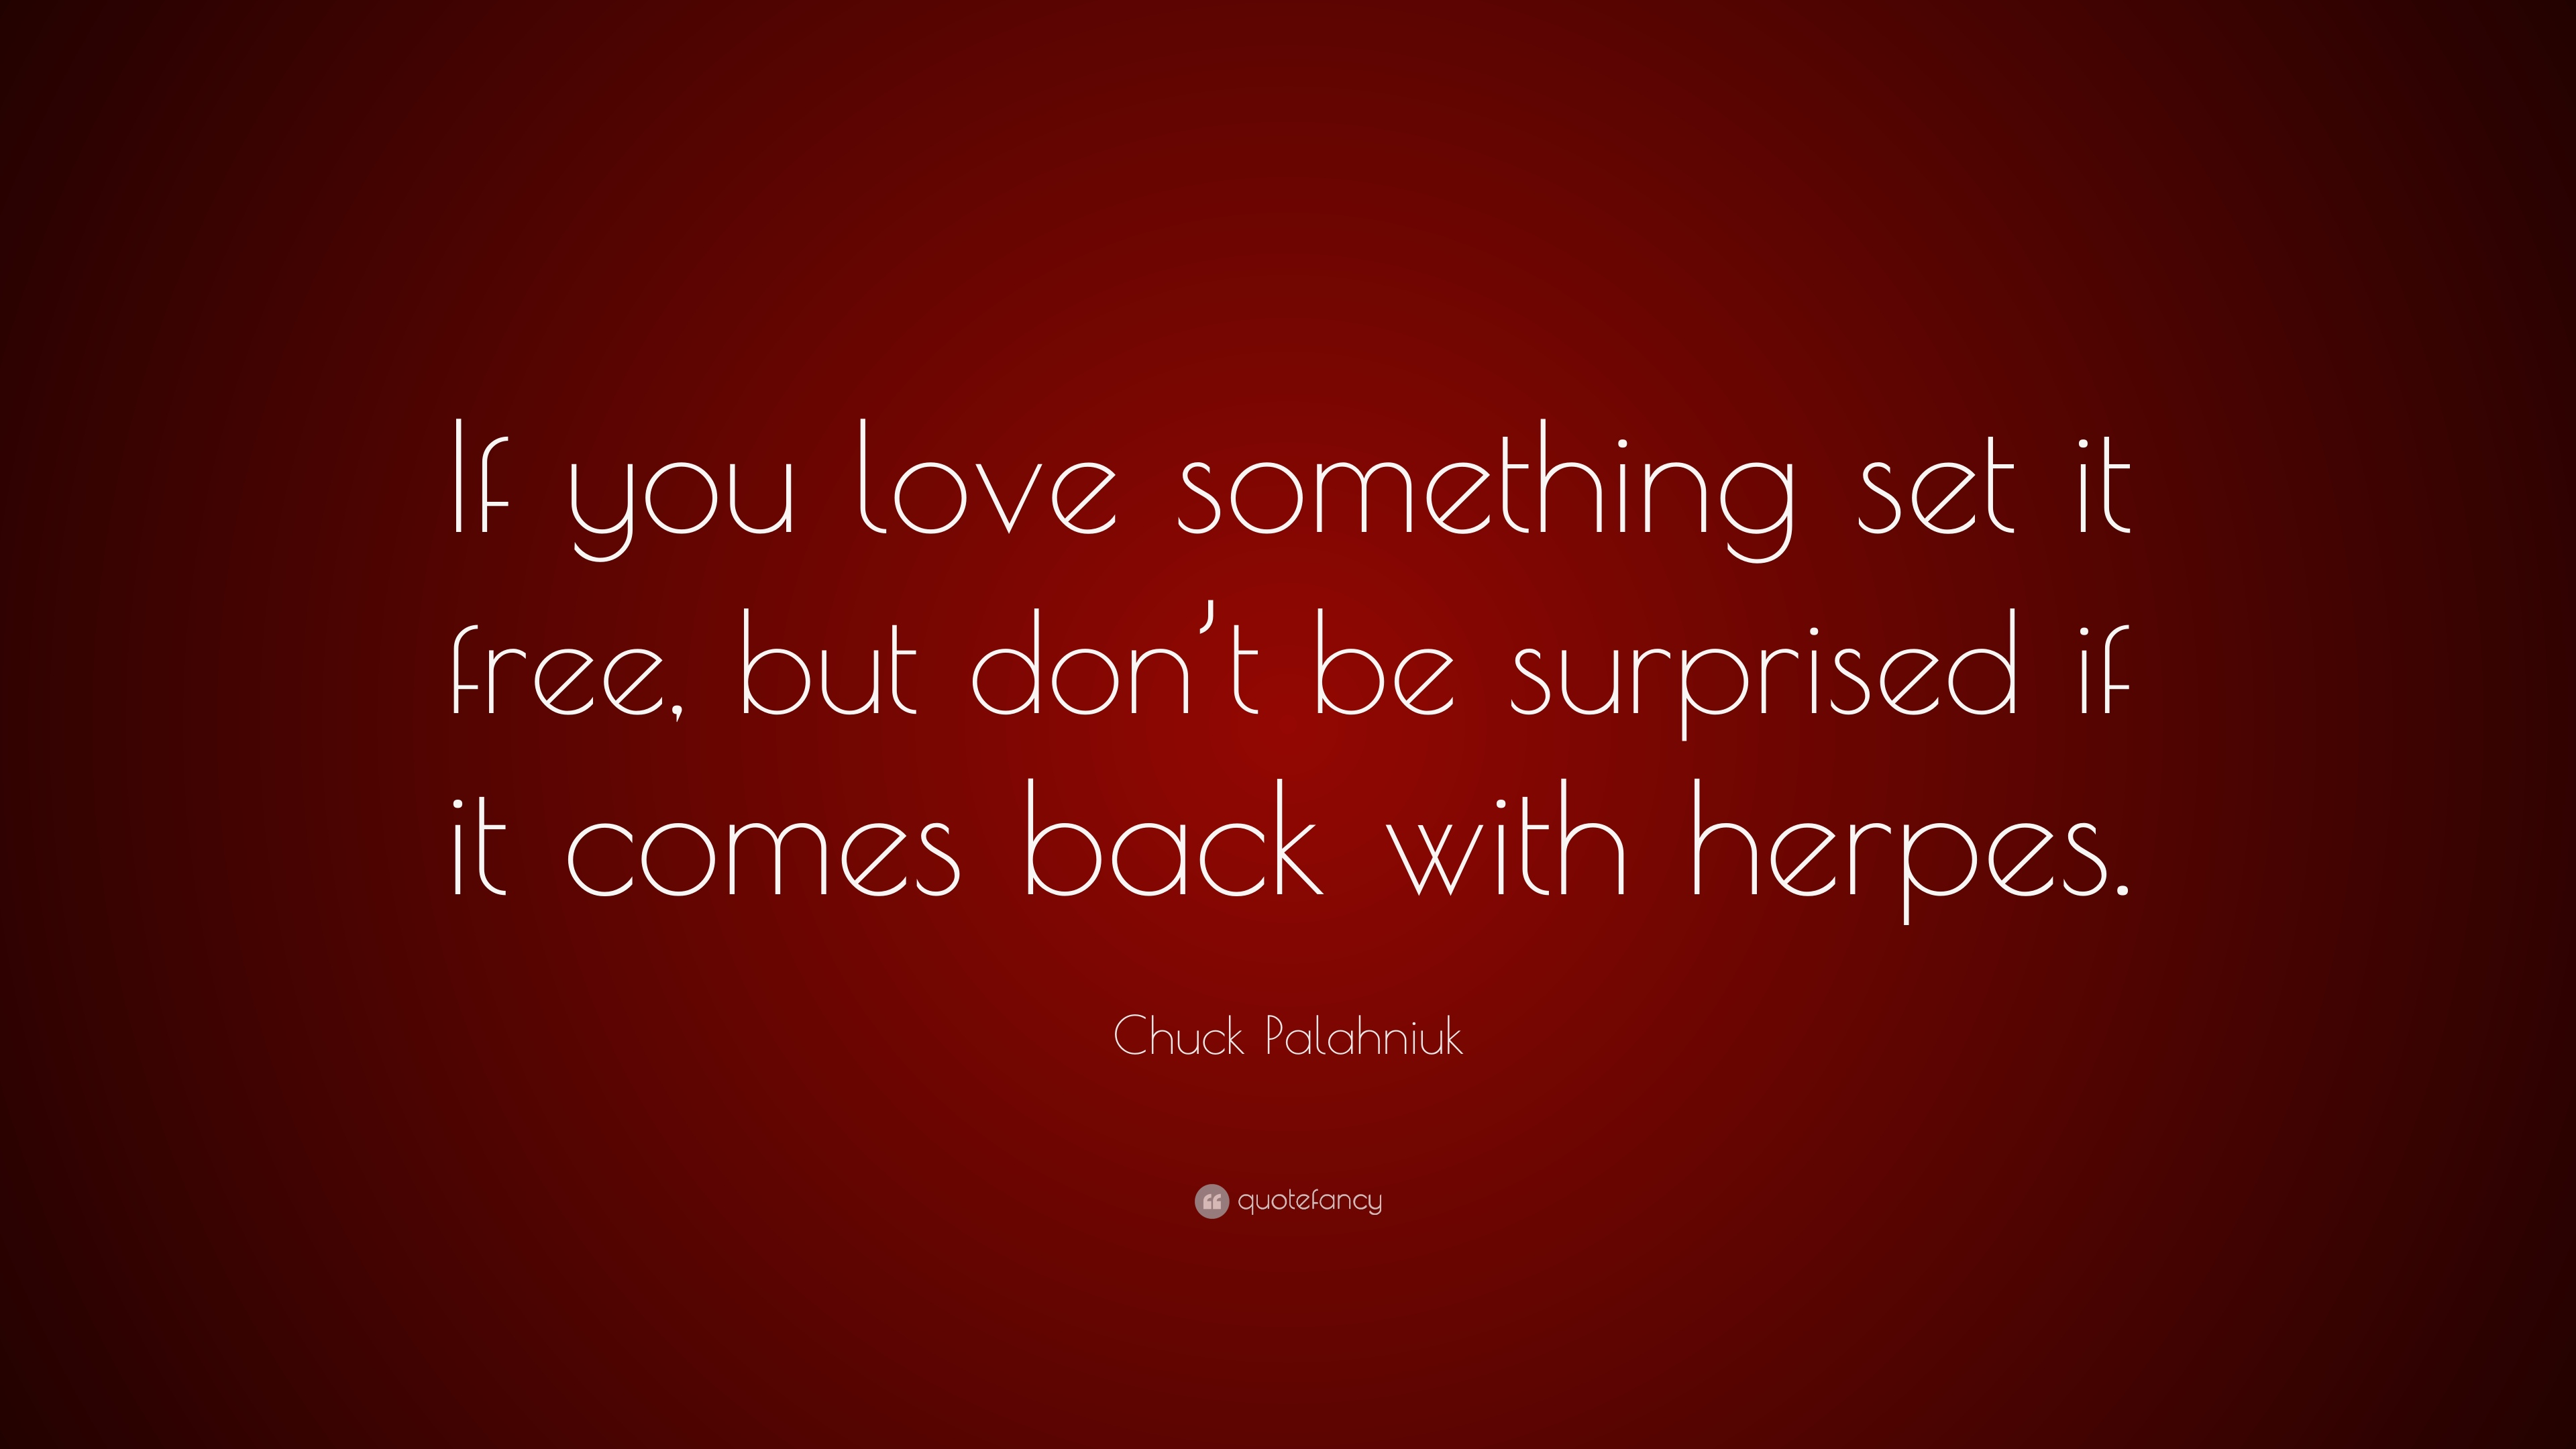 Funny Quotes If You Love Something Set It Free : Chuck Palahniuk Quote: ?If you love something set it free, but don ...